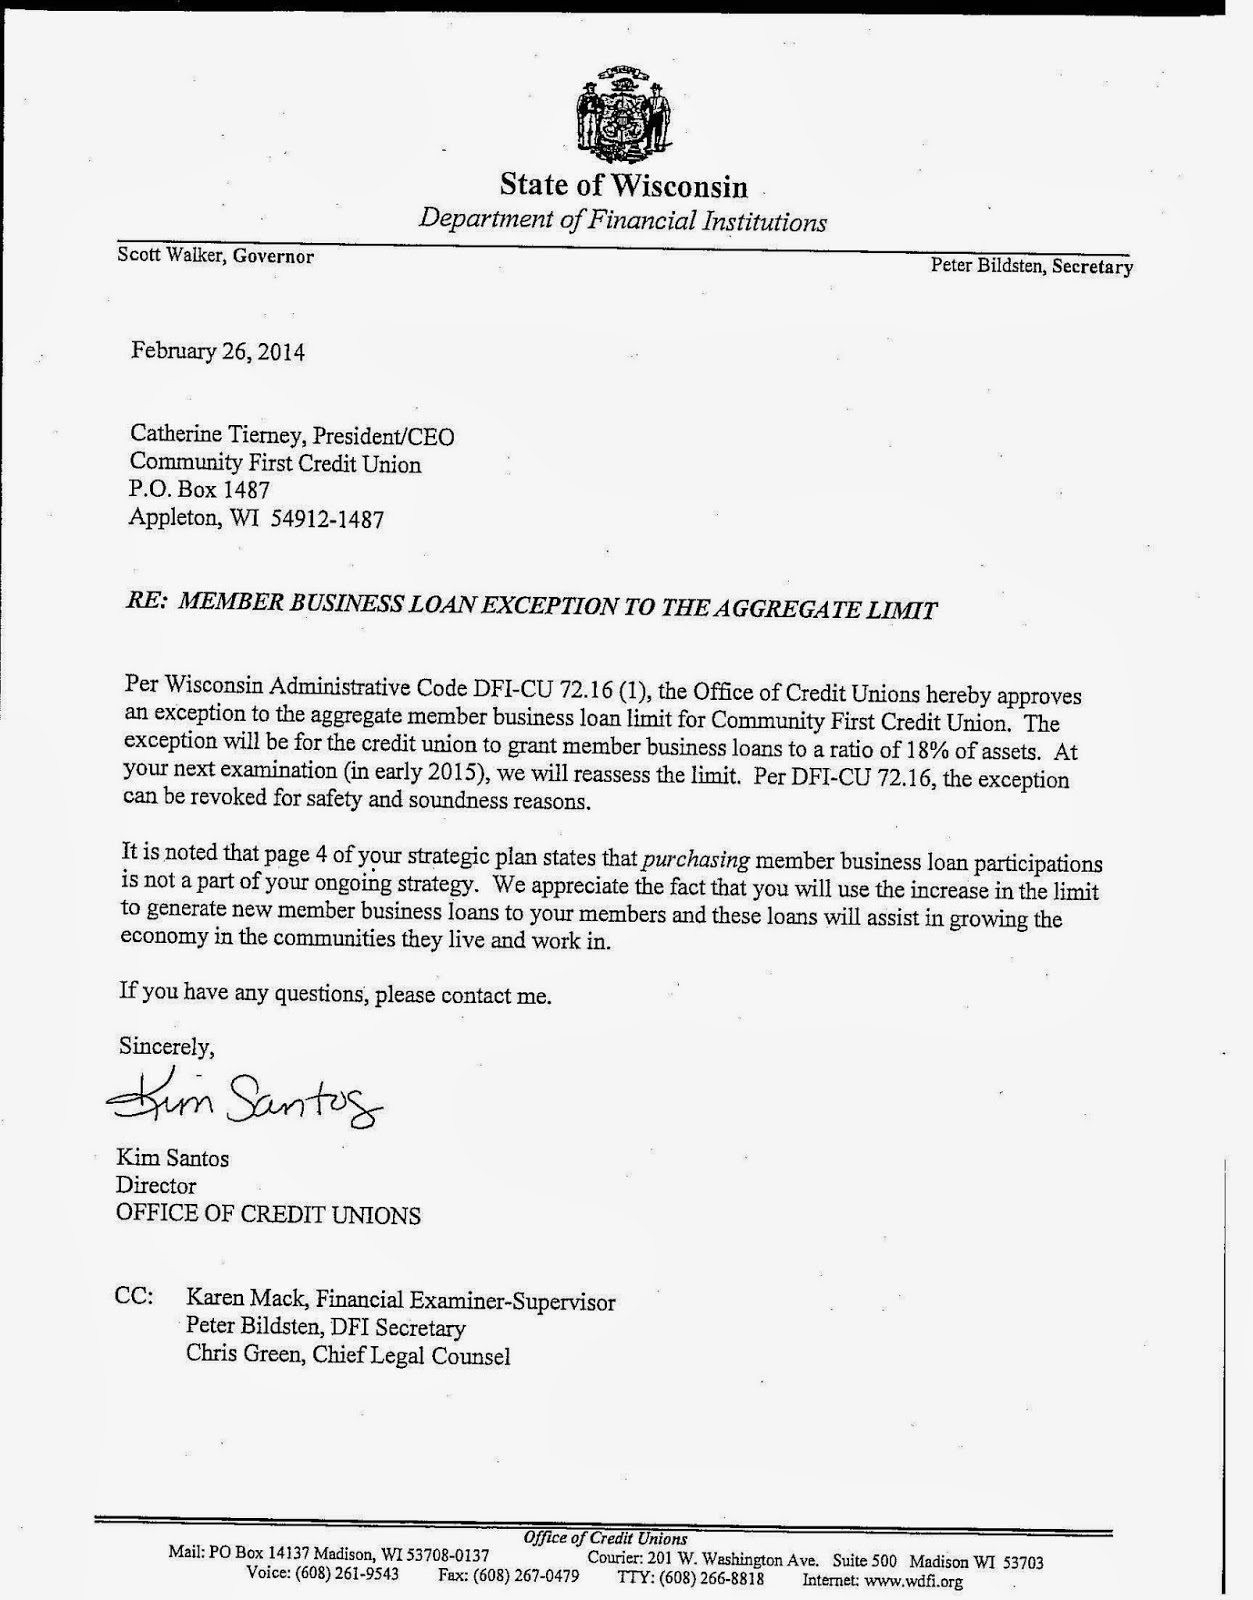 Personal Loan Letter Template - Request Letter to Bank for Increase Cash Credit Limit Save Personal